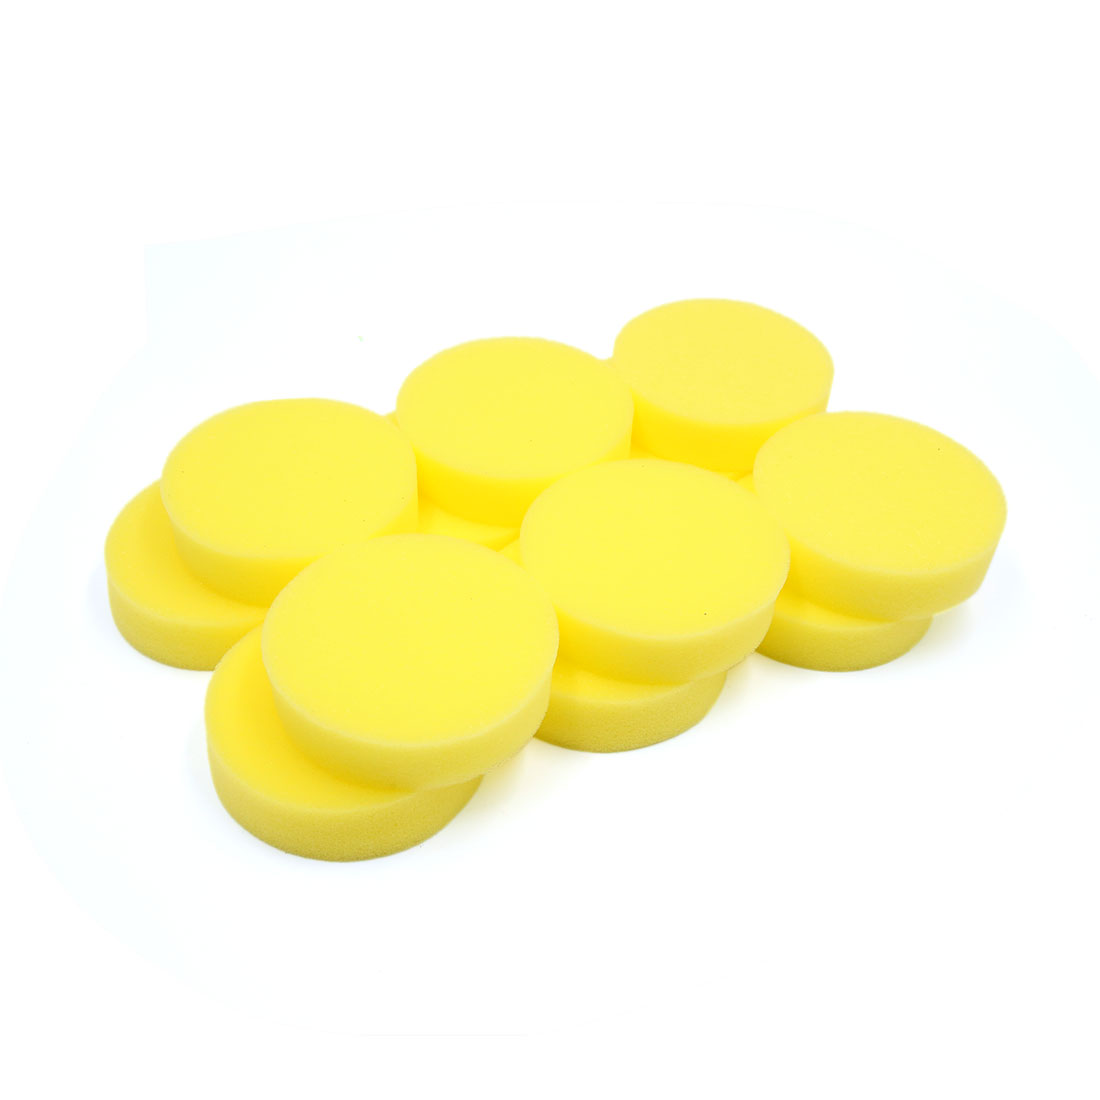 12pcs Yellow Round Shaped Cleaner Cleaning Tool Washing Sponge for Car Home